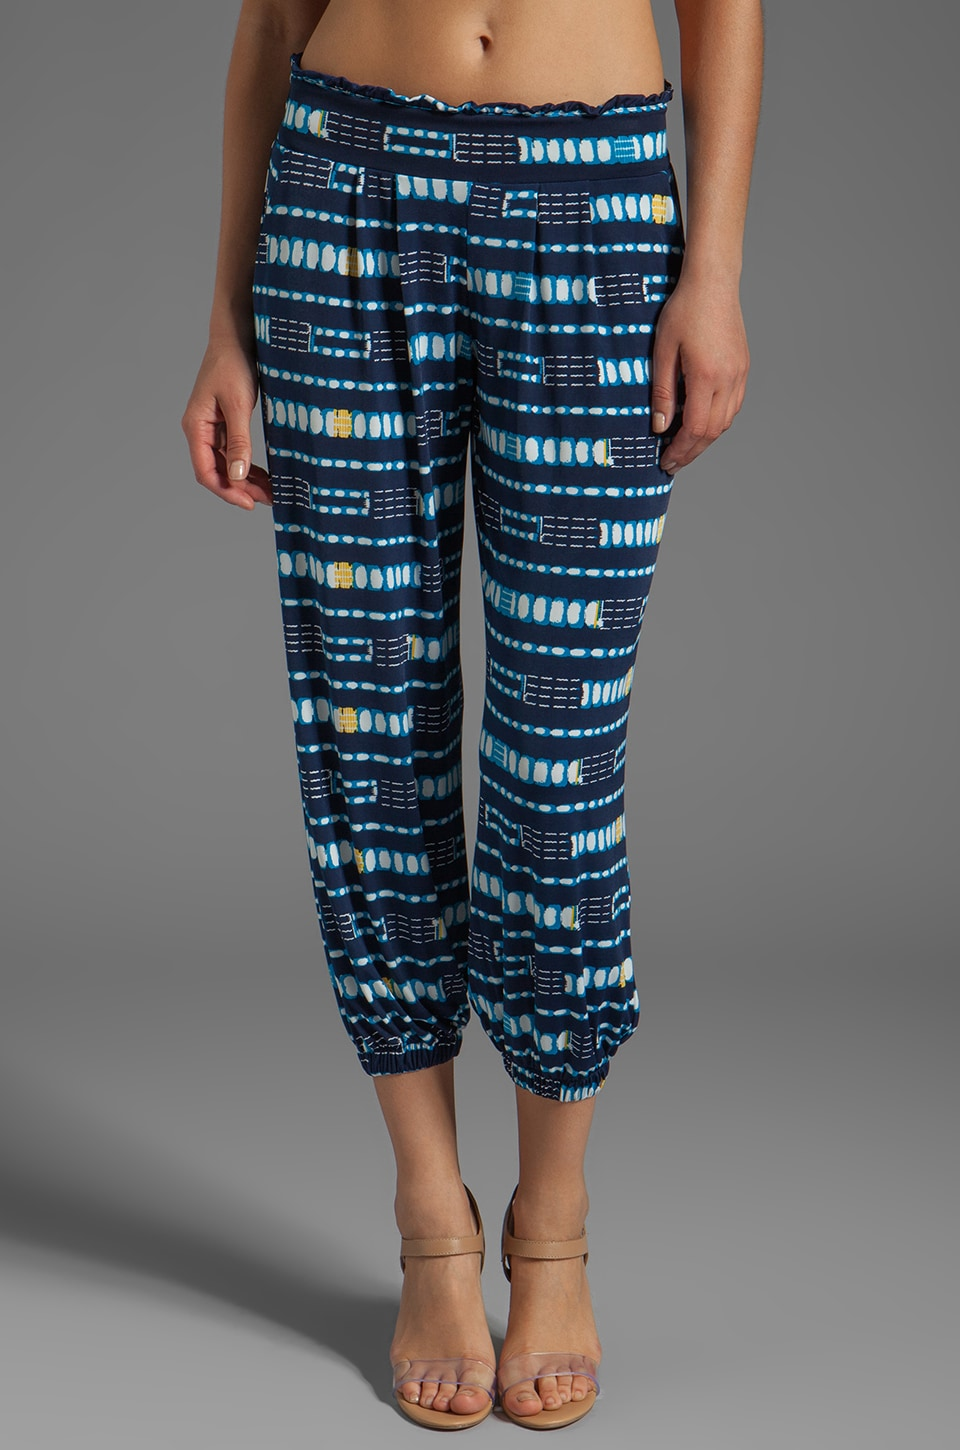 T-Bags LosAngeles Pant in Blue Linear Tribal